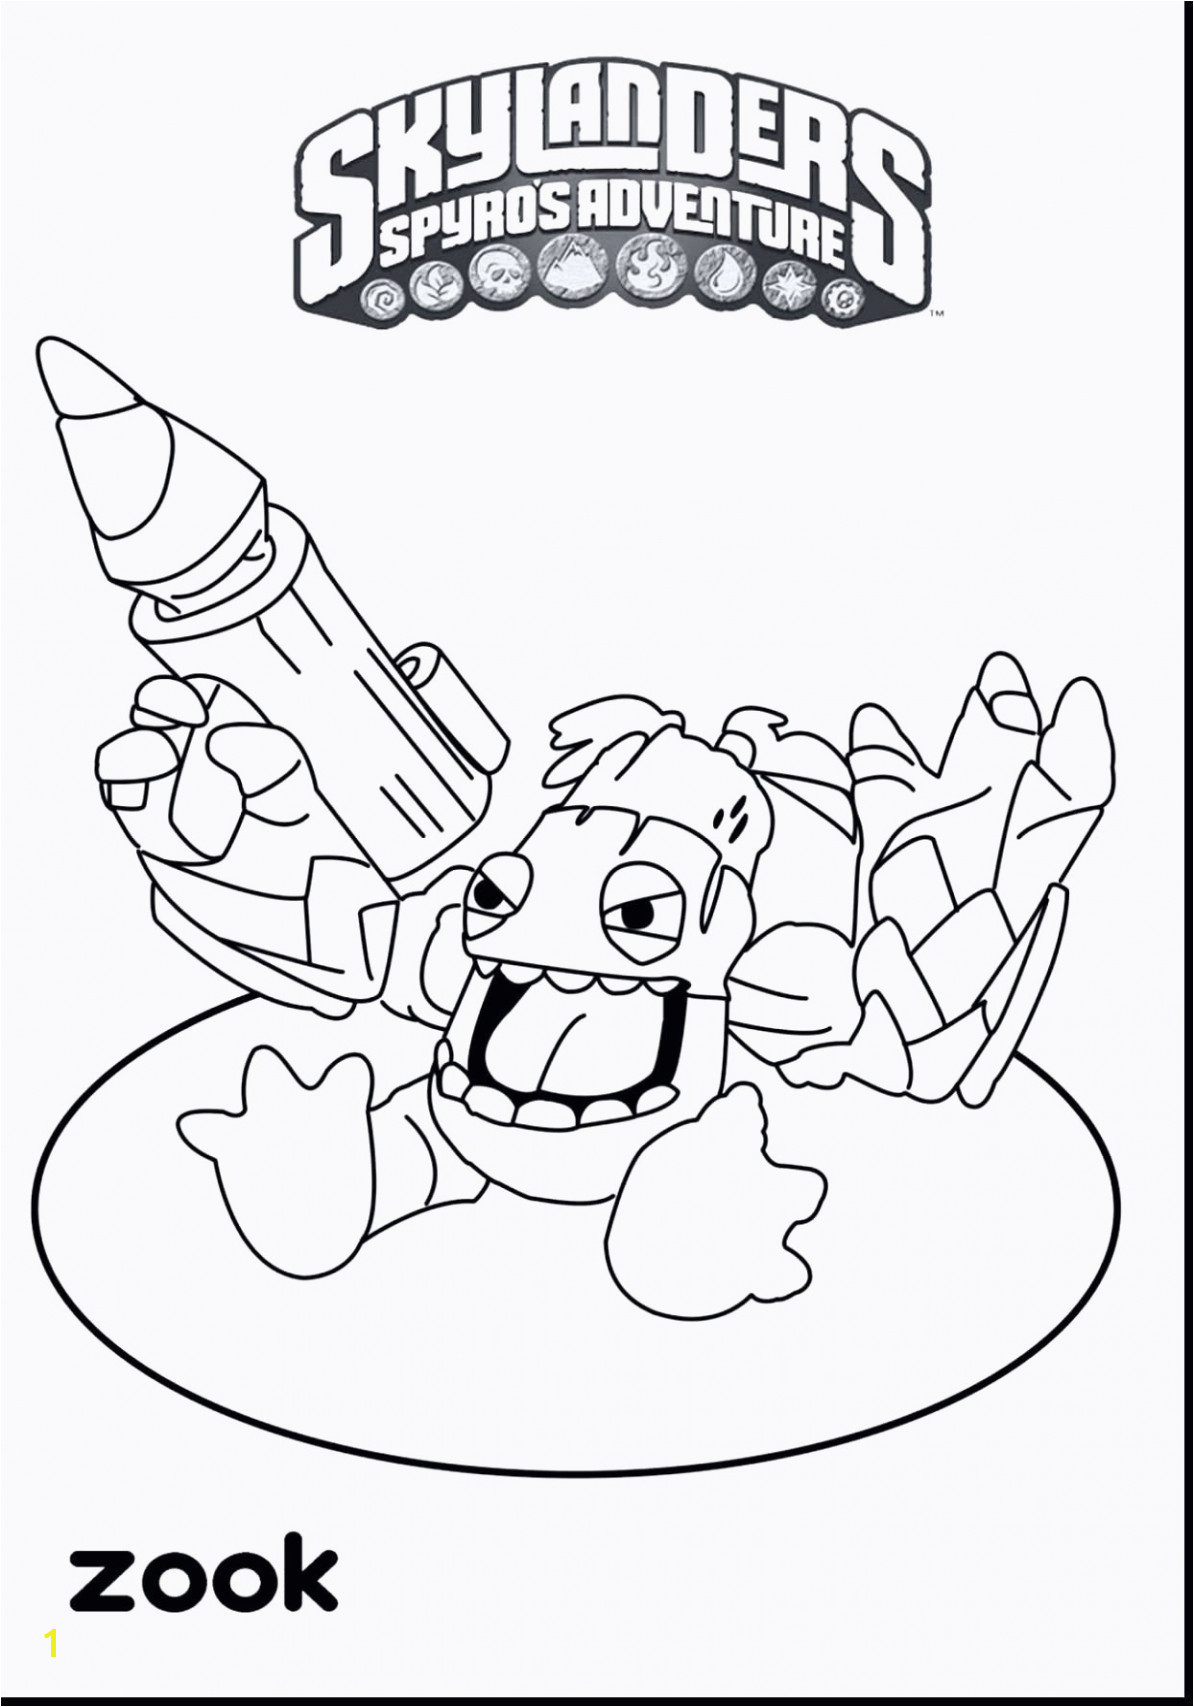 Plane Coloring Sheets Autumn Coloring Pages New Preschool Coloring Pages Fresh Fall Coloring Pages 0d Page